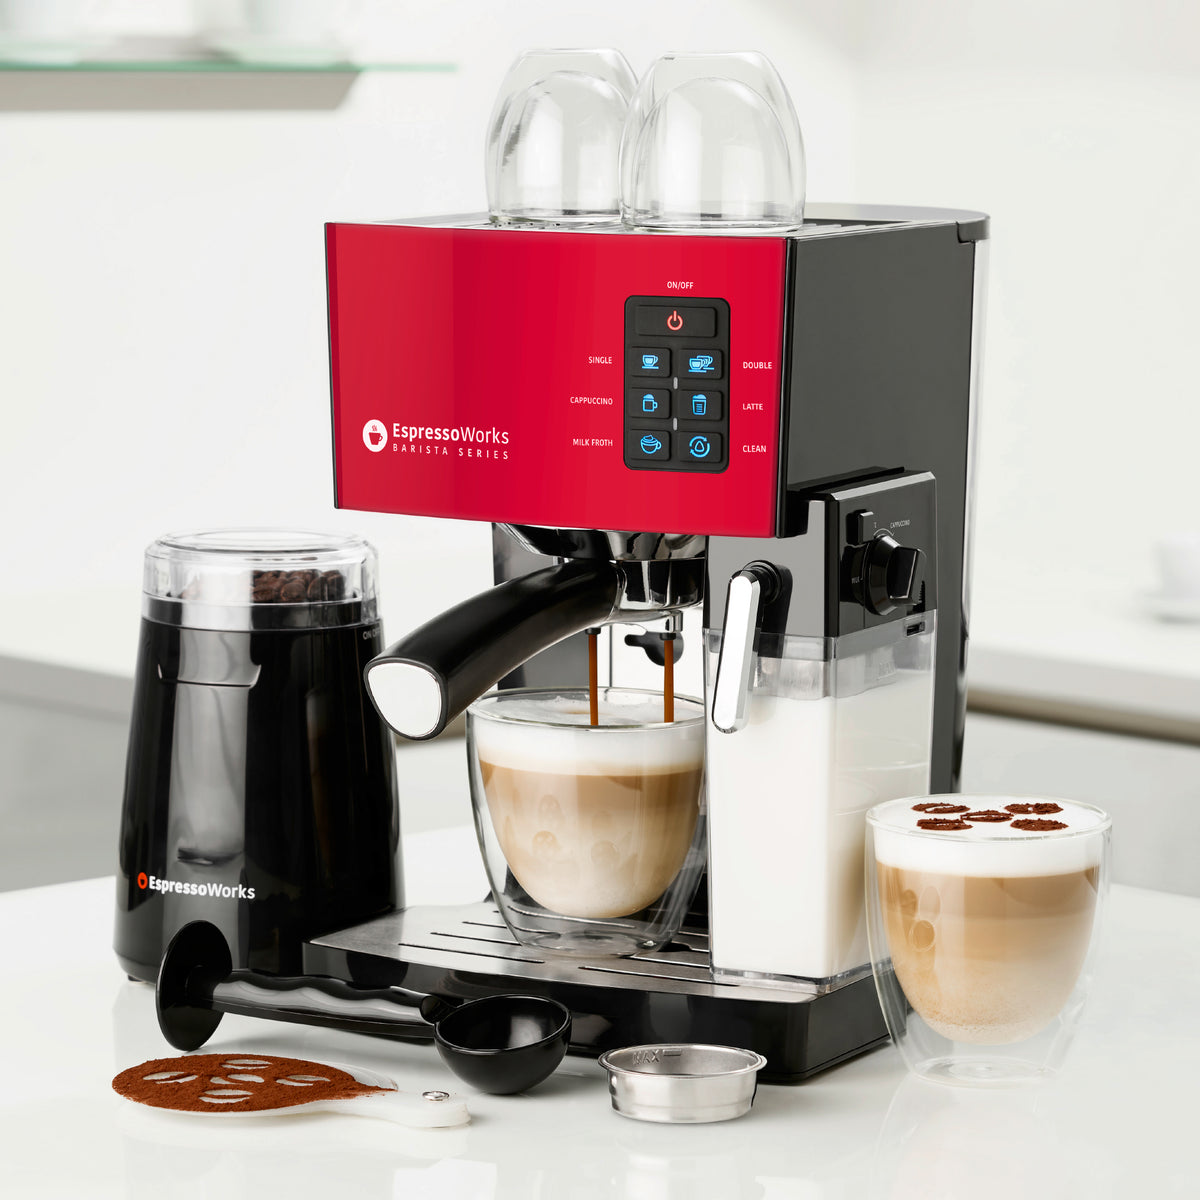 10-Piece Red Espresso & Cappuccino Maker Set